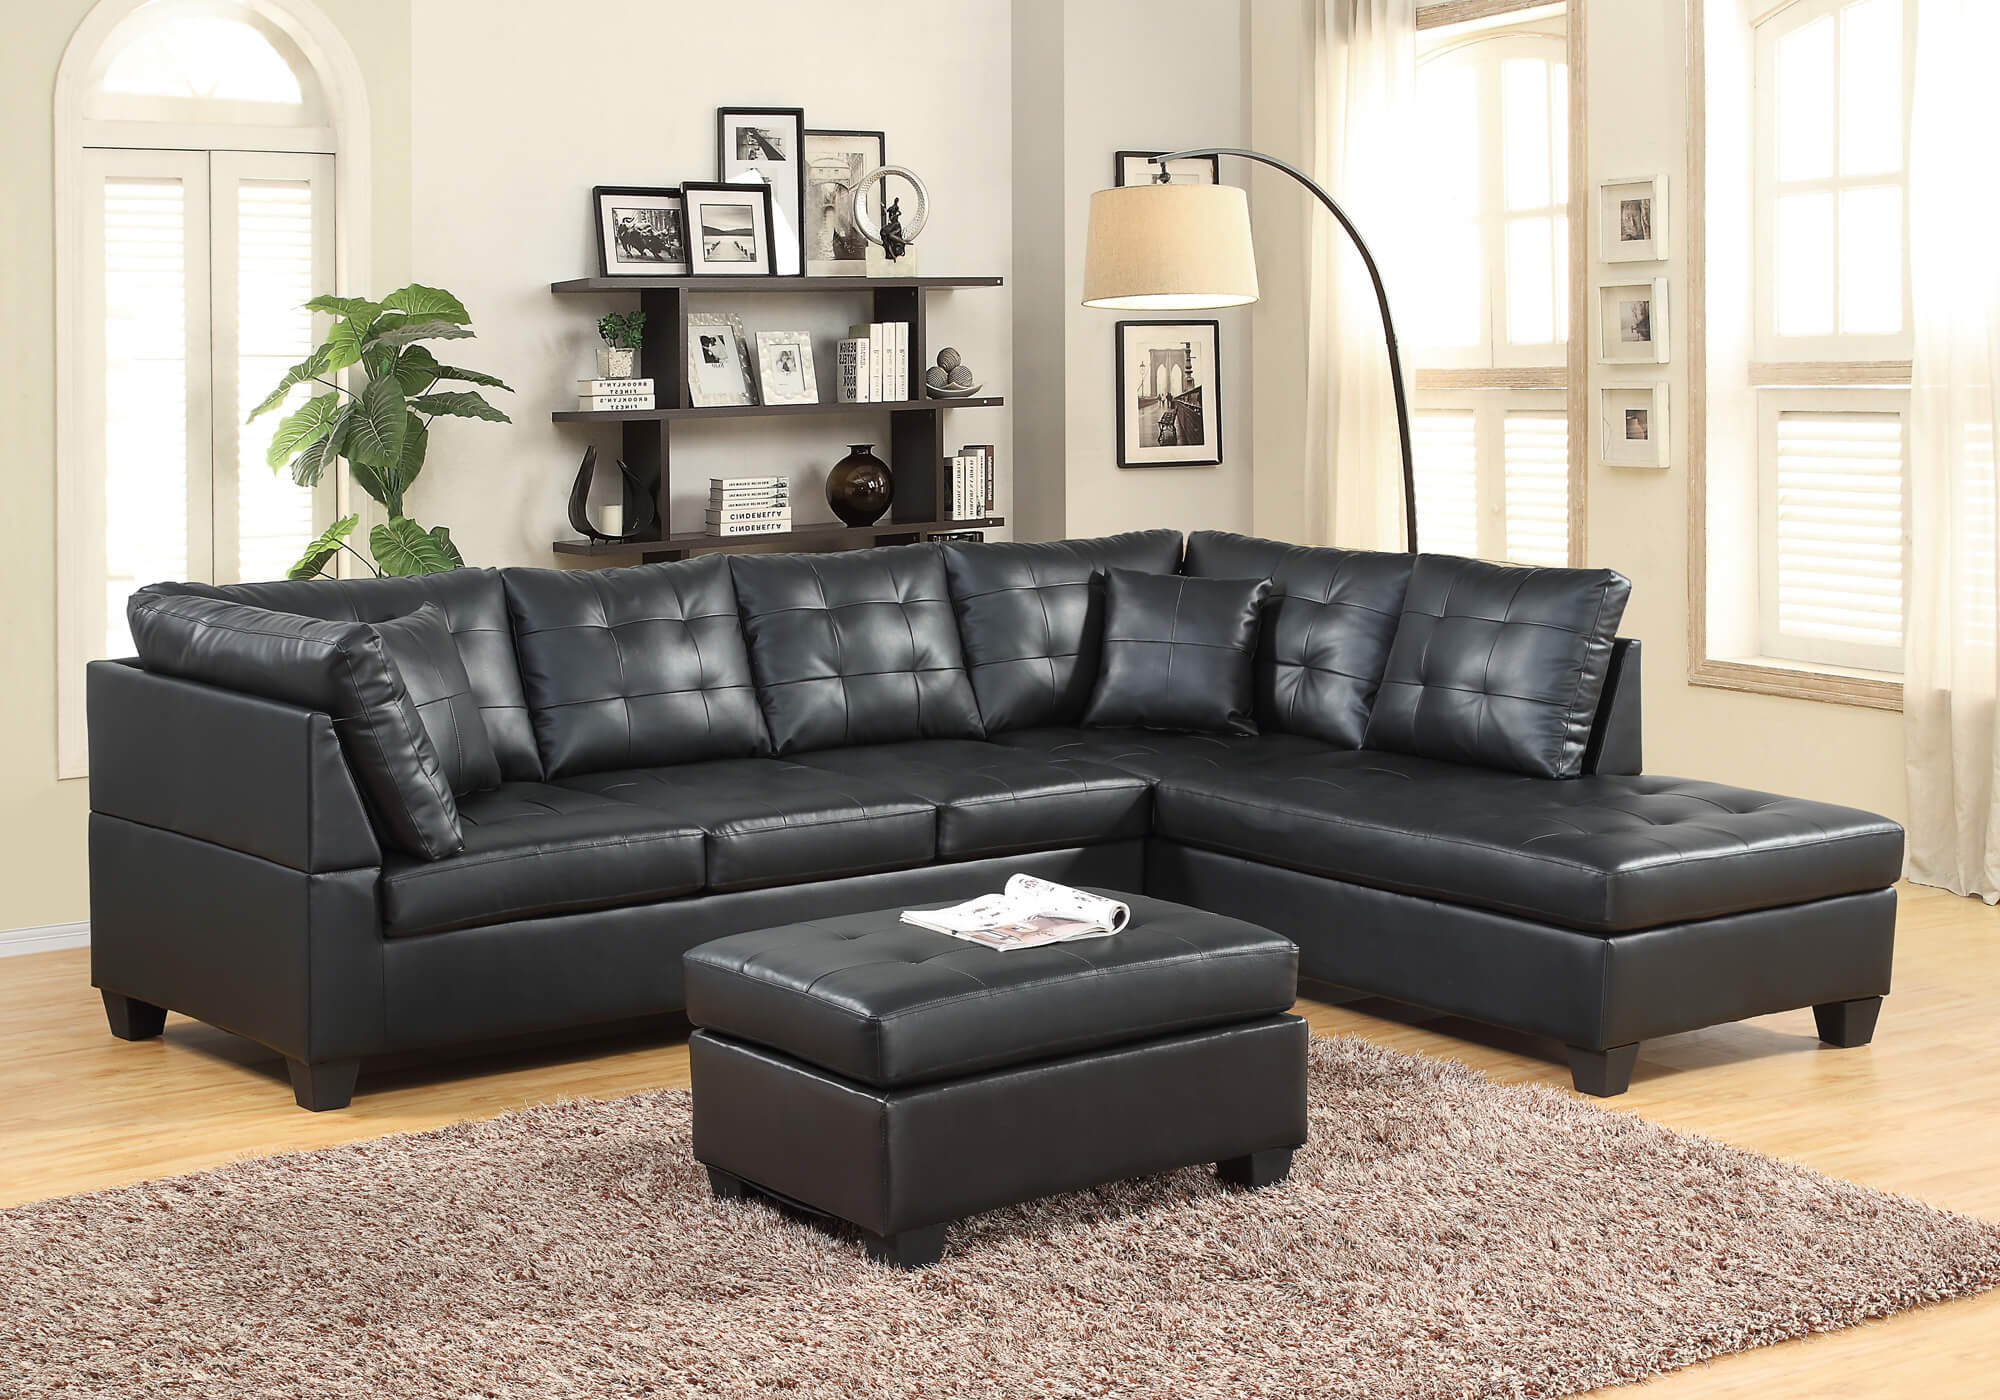 Black leather like sectiona sectional sofa sets Living room sofa set